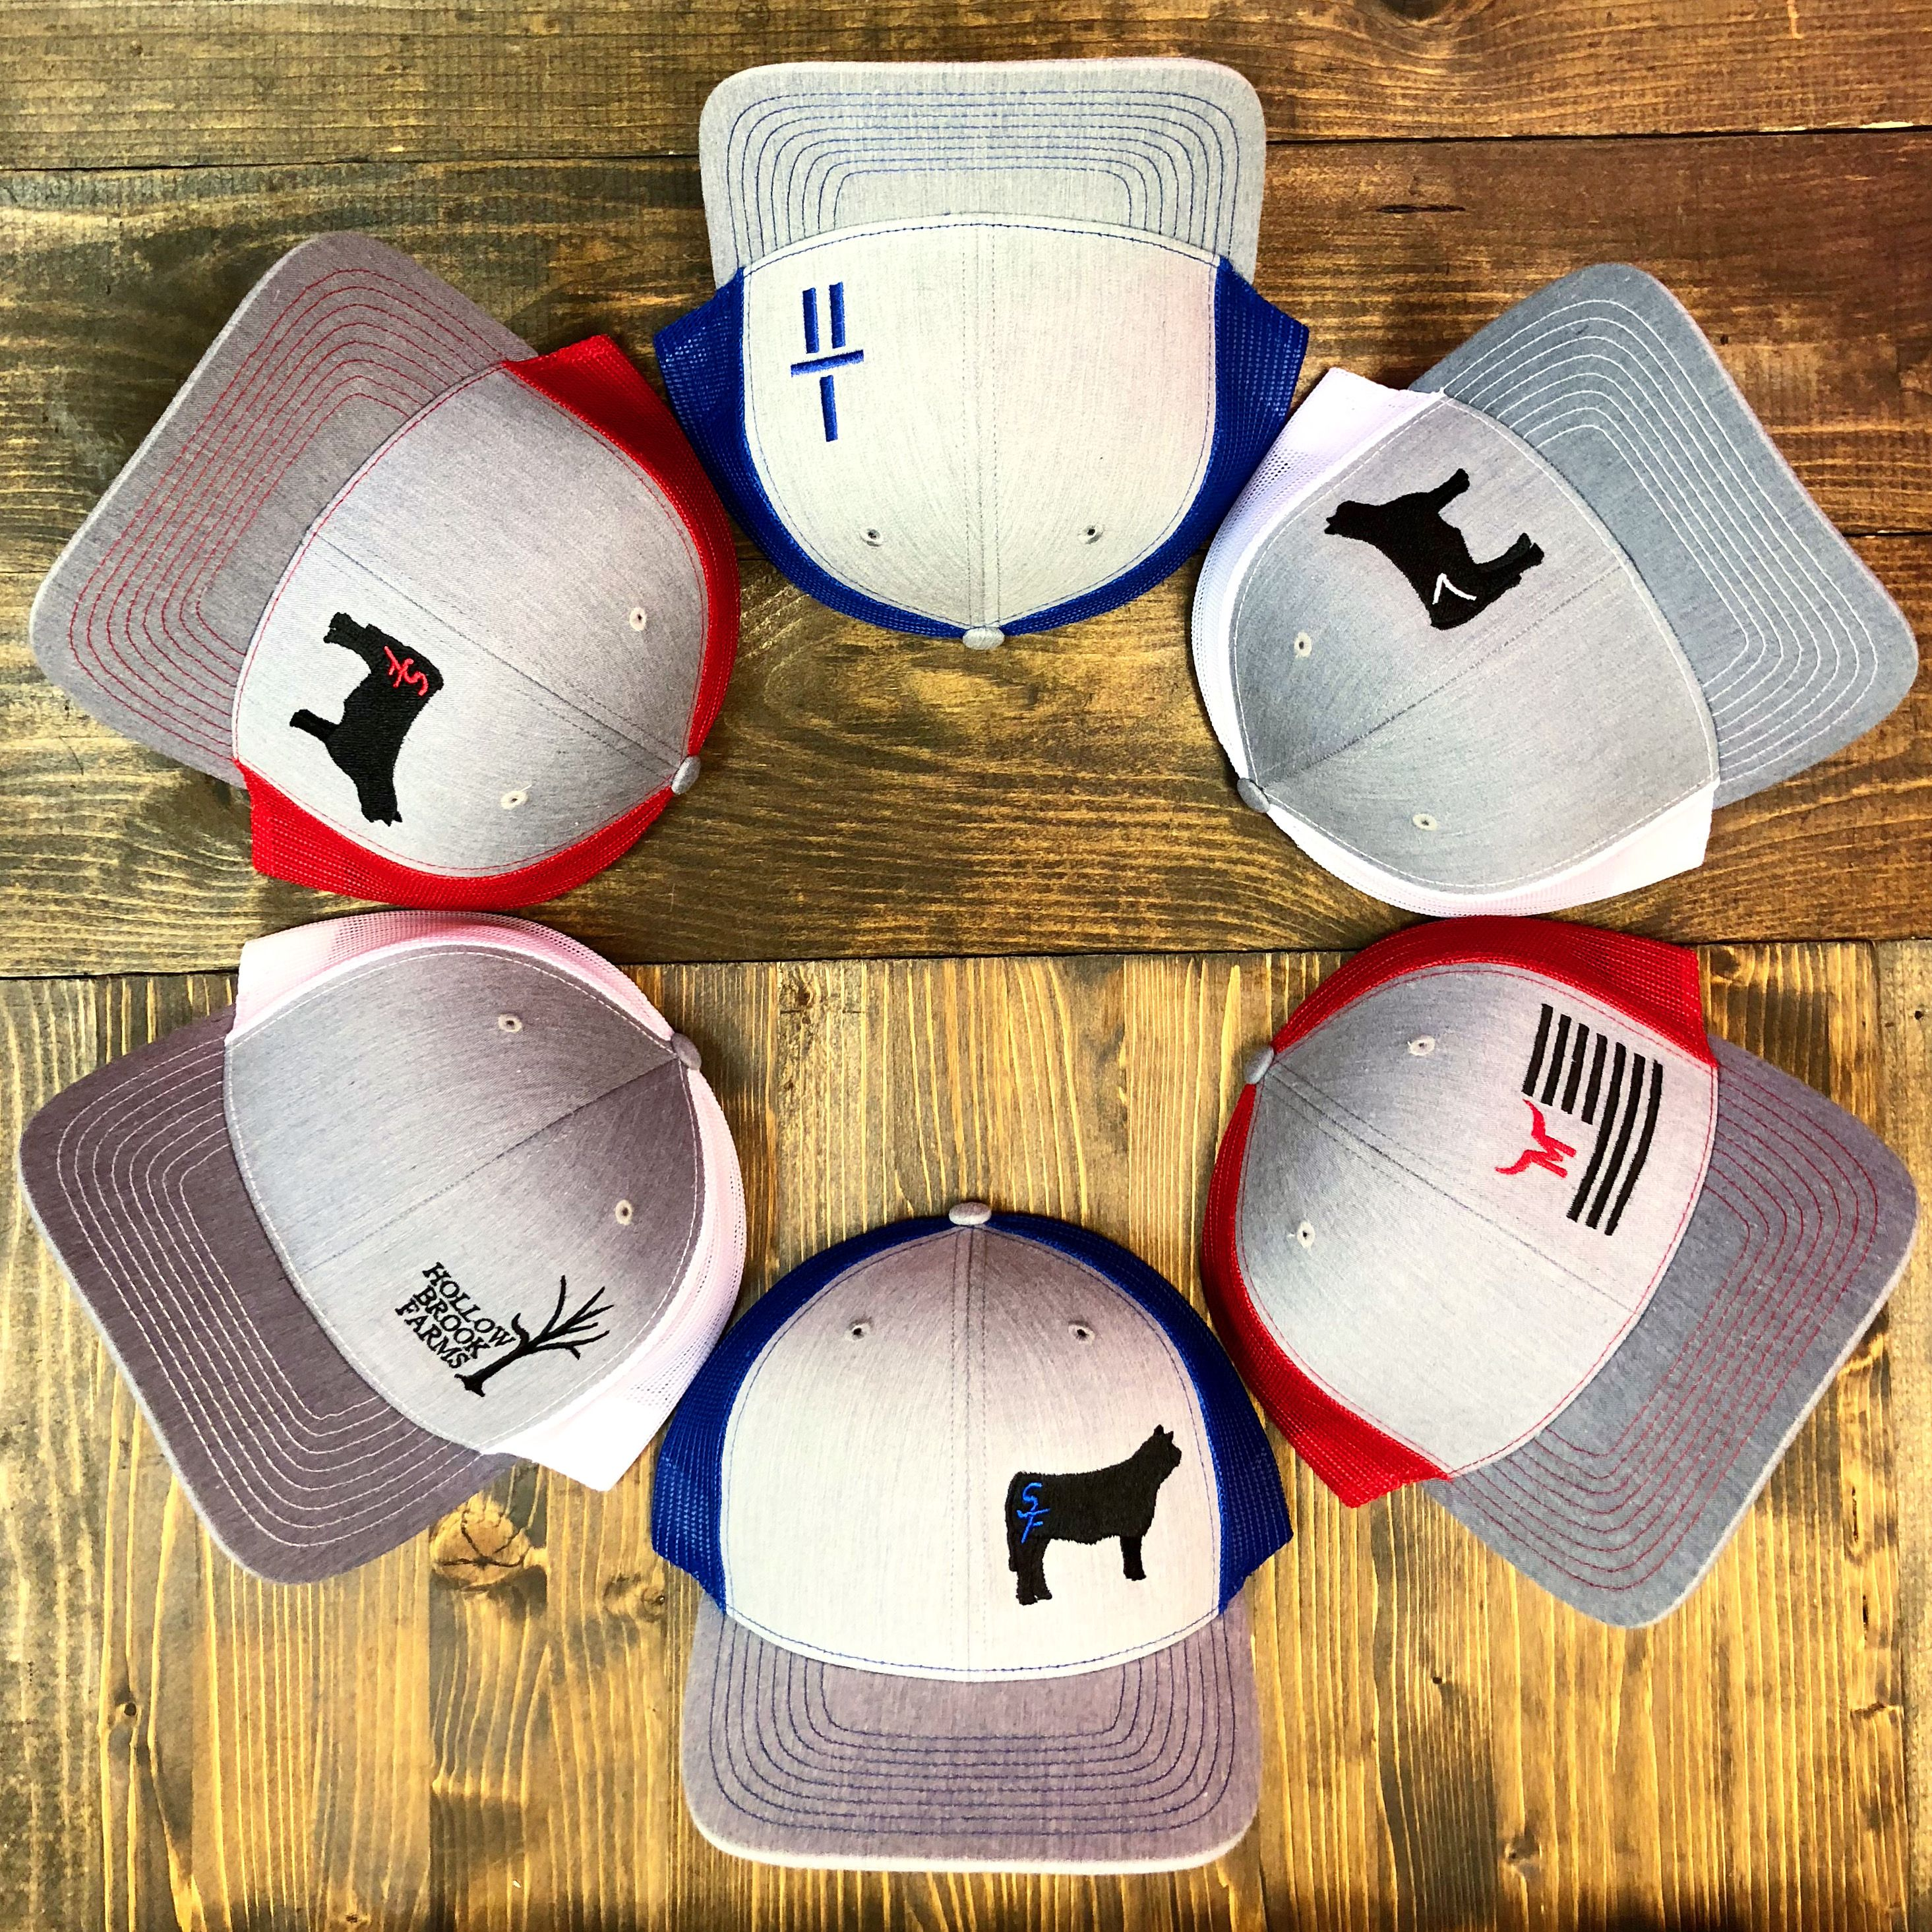 Hats and apparel customized with your brand or farm/ranch